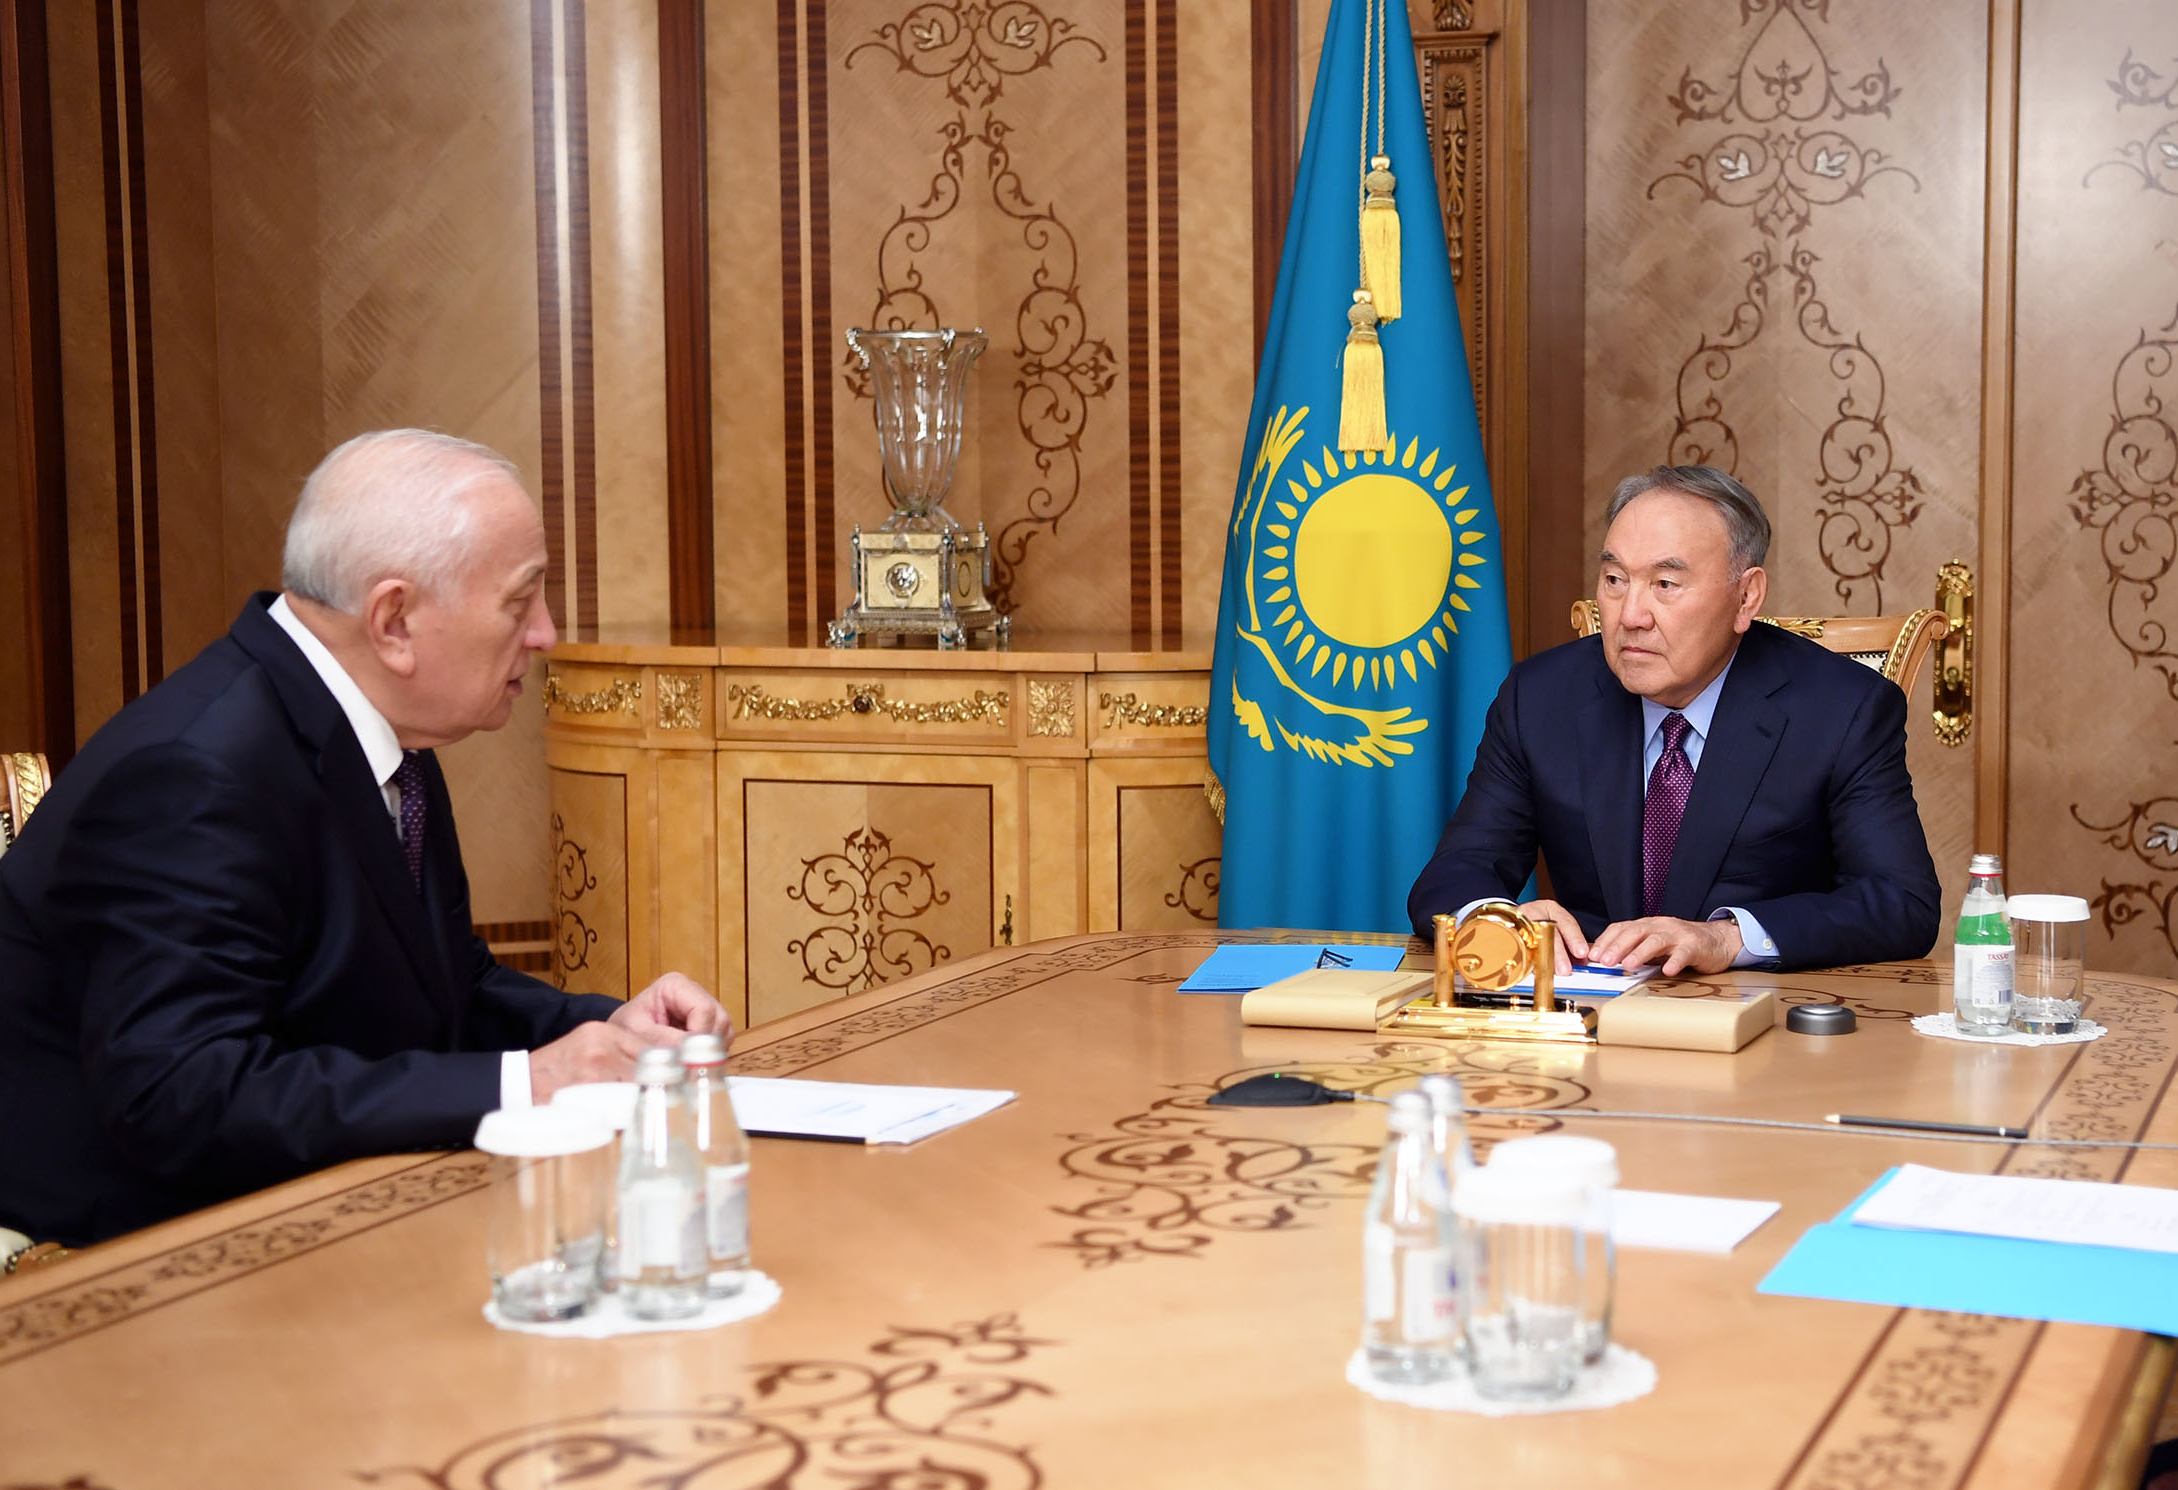 b7d4d68e8041ba3fcdafc332eddfb54b - Nazarbayev told about new opportunities for Kazakh scientists